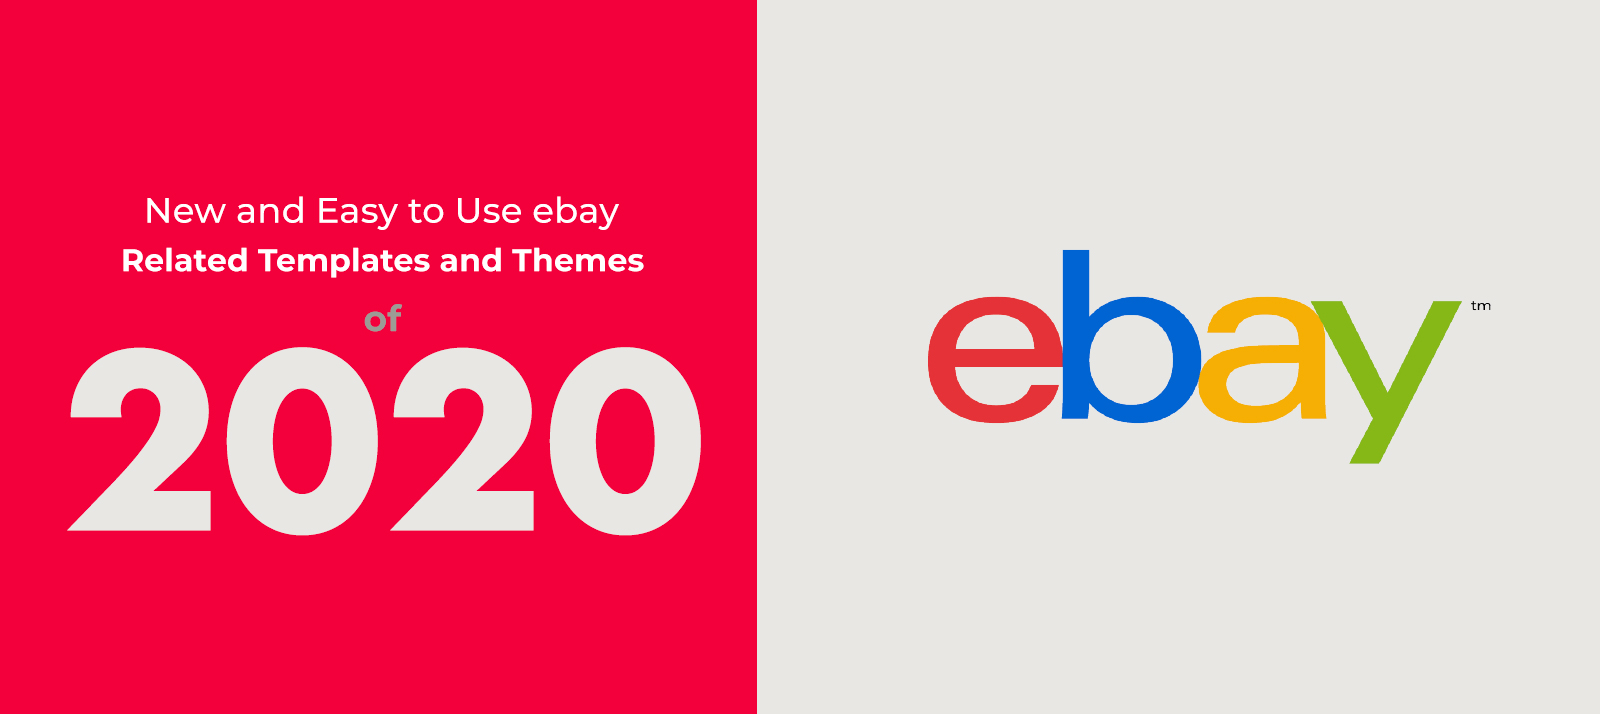 13 New and Easy to Use Ebay Related Templates and Themes of 2020